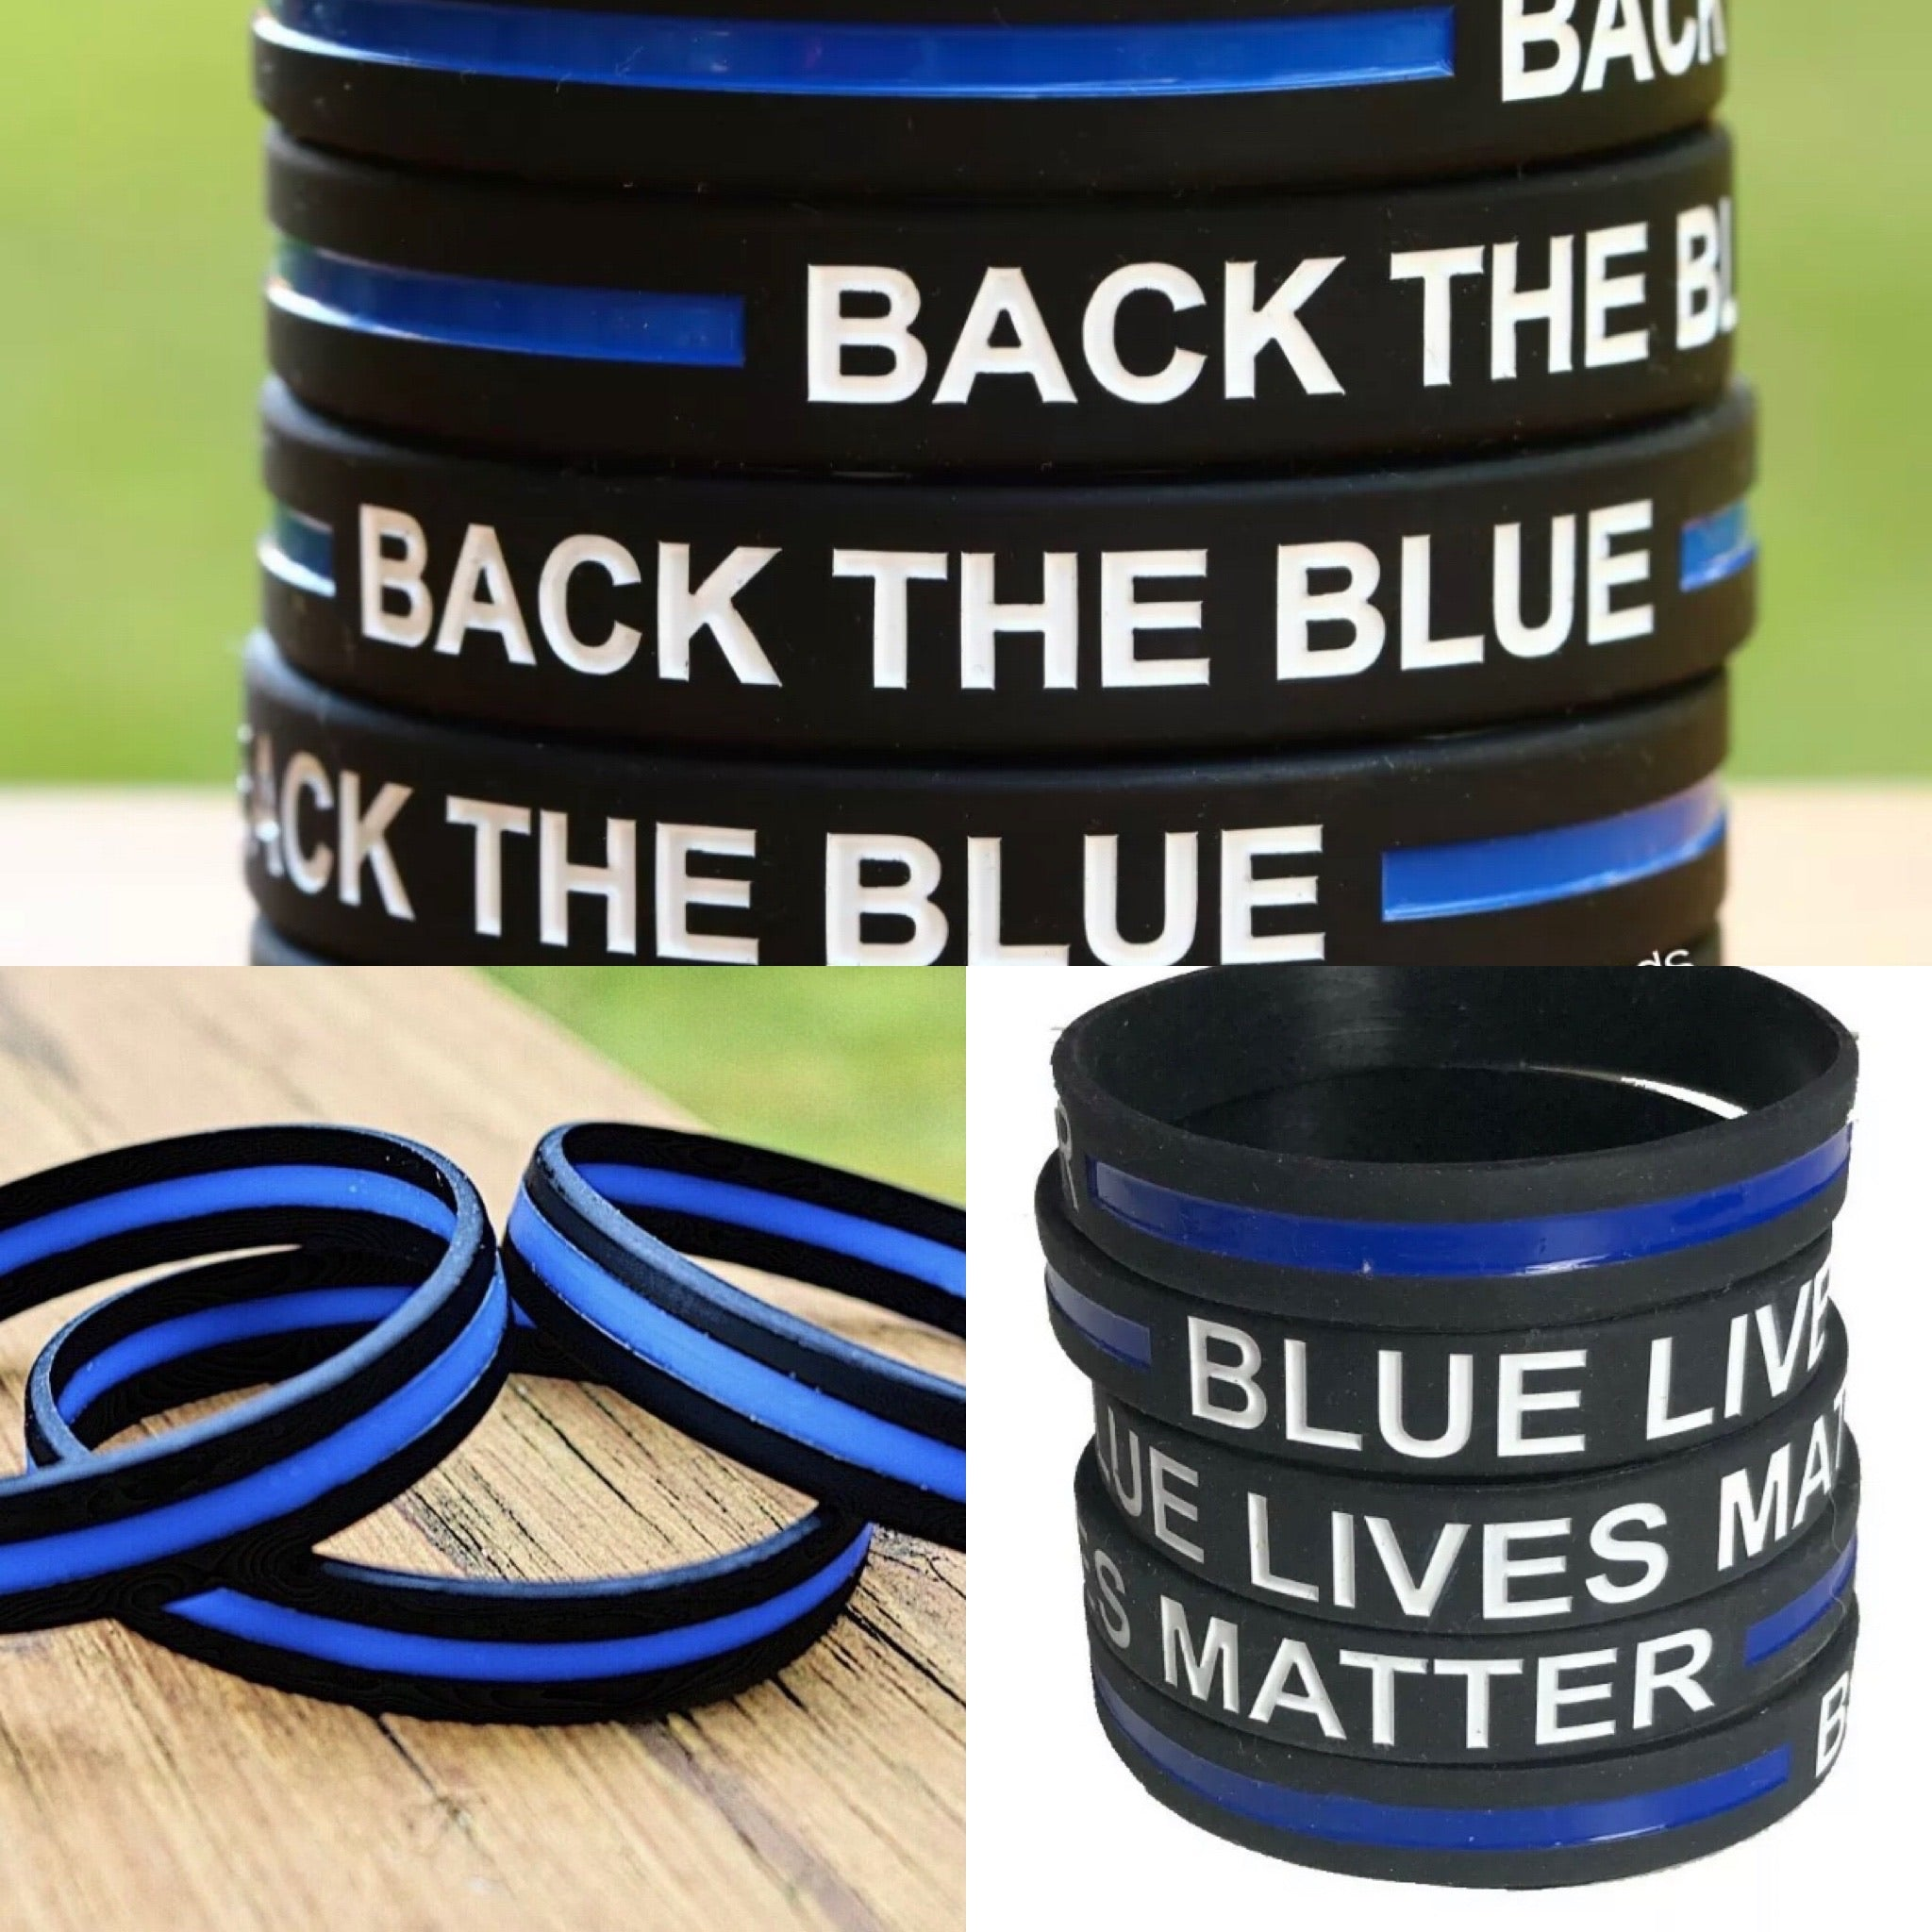 Police Officers Patrol Awareness Support Blue Lives Matter Leo Thin Blue Line Silicone Wristband Bracelets Value Pack